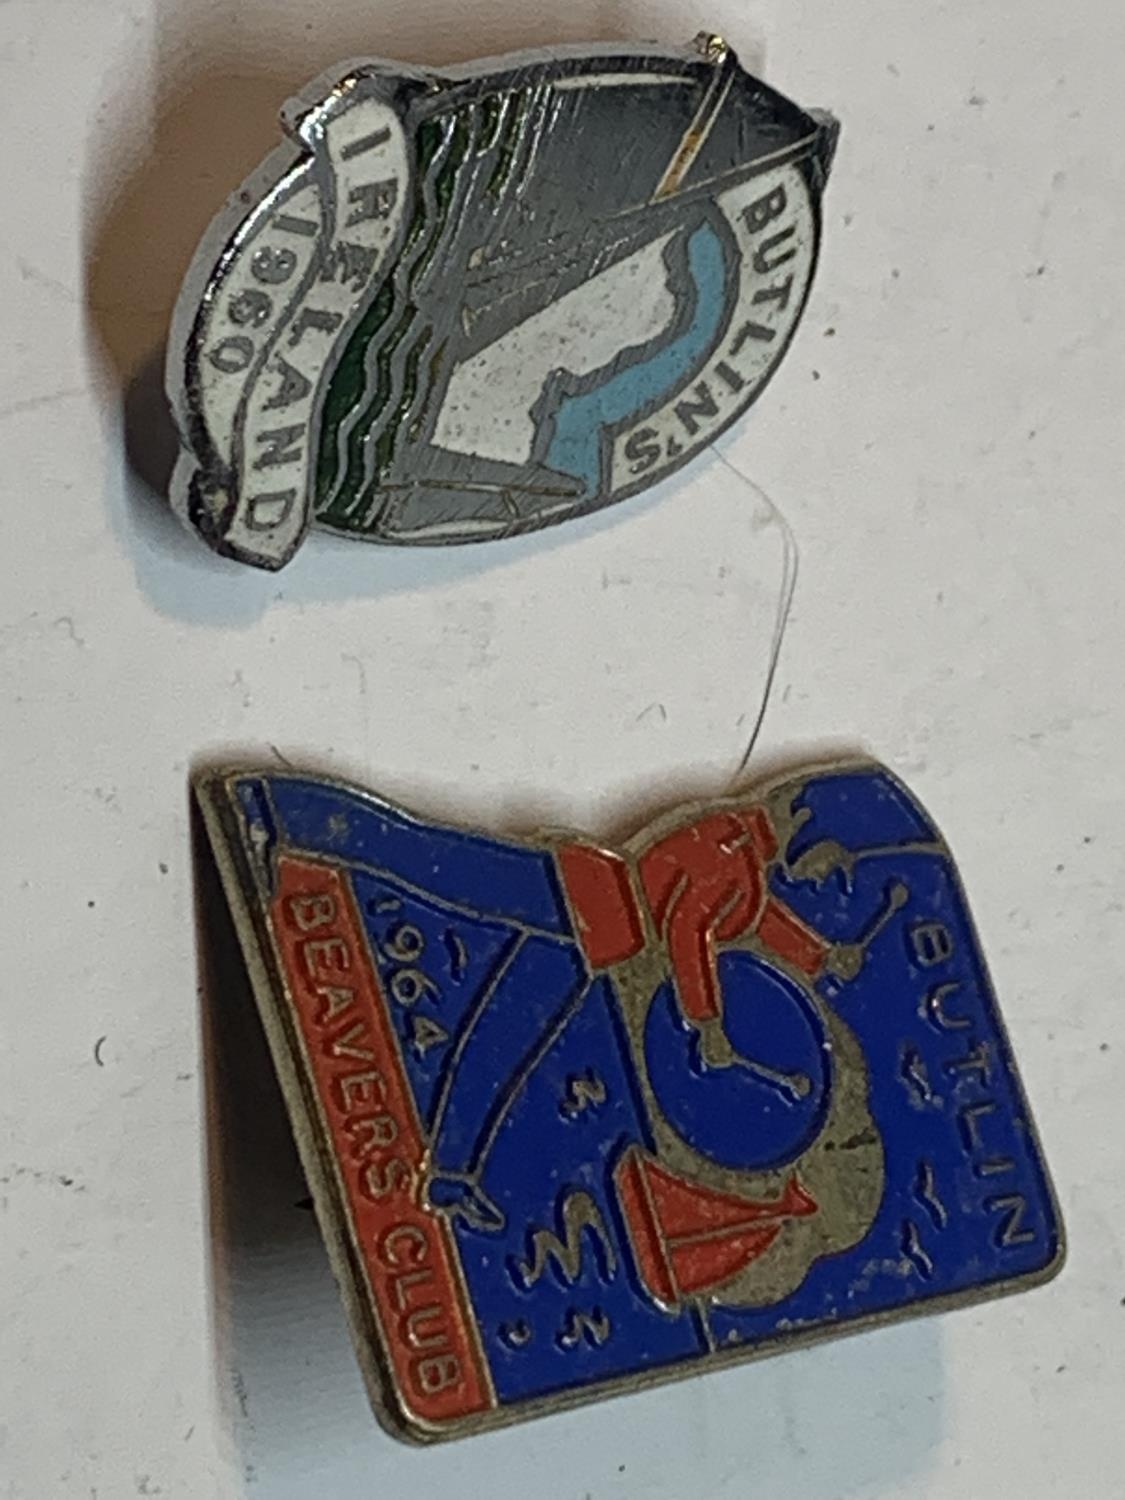 TWO RARE BUTLINS BADGES TO INCLUDE AN IRELAND 1960 AND A 1964 BEAVERS CLUB